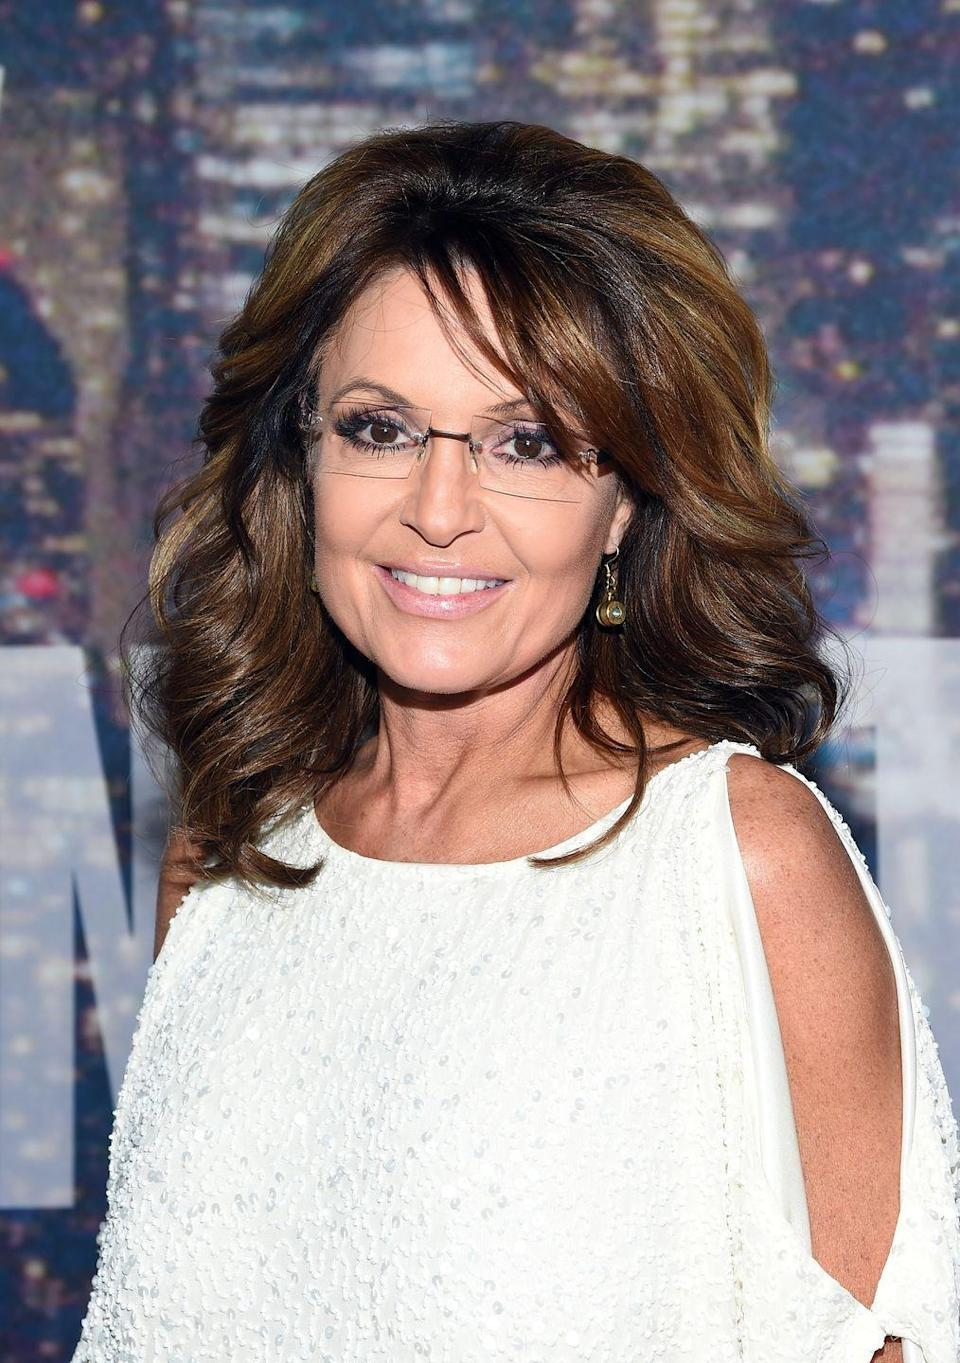 <p>After unsuccessfully running with John McCain in the 2008 Presidential Election and resigning from her position as the Governor of Alaska in 2009, Sarah launched her own online news network, the Sarah Palin Channel, in 2014.</p>